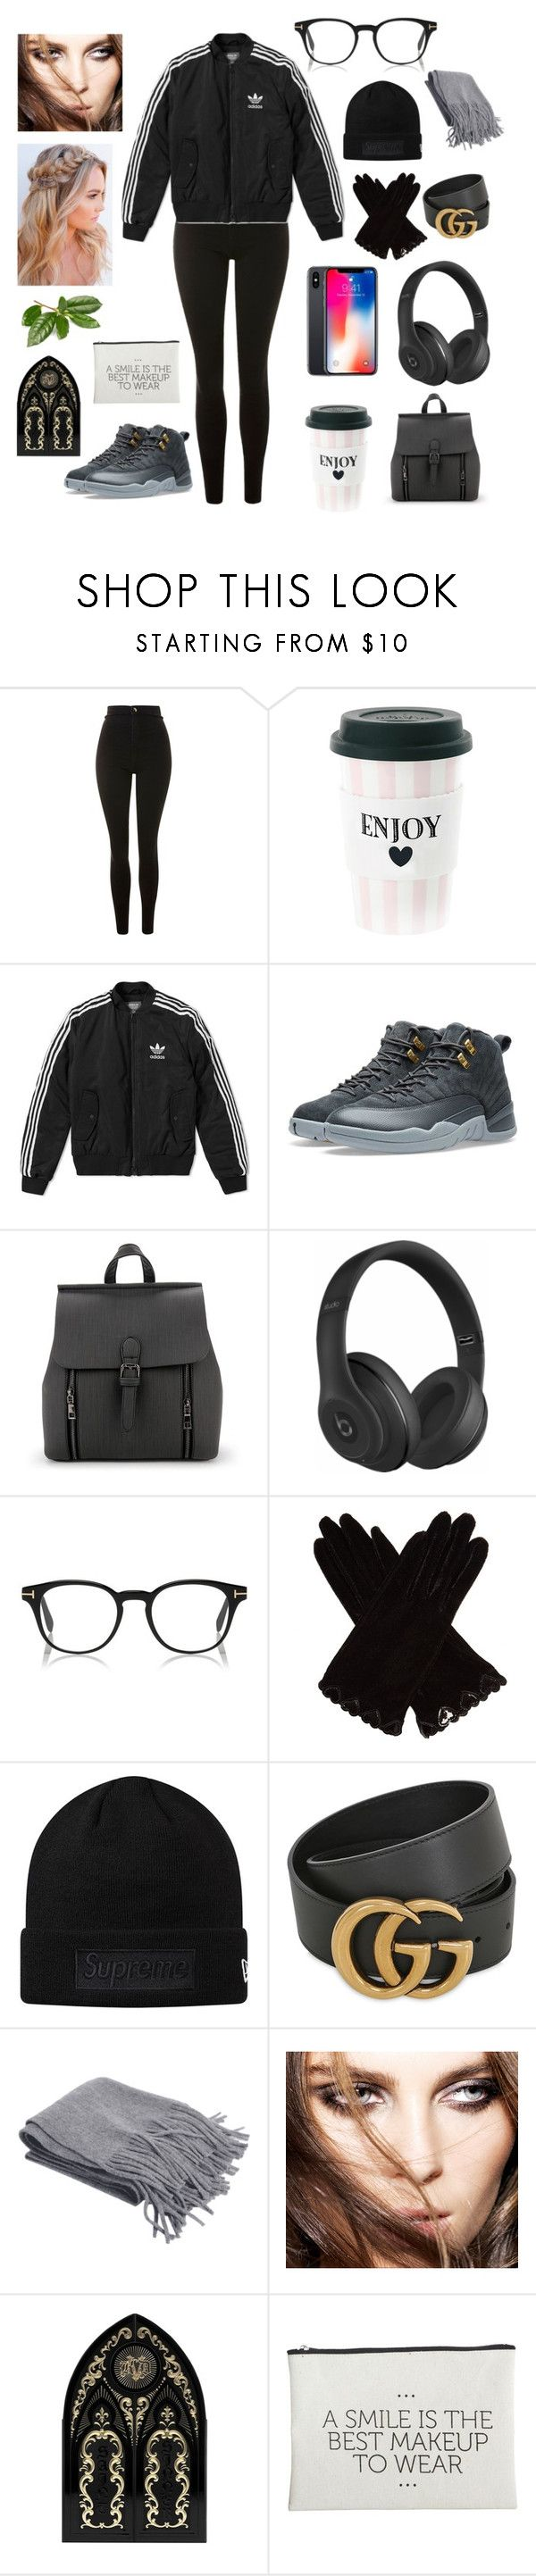 """🥤❄️"" by cxnfession ❤ liked on Polyvore featuring Topshop, Miss Étoile, adidas, NIKE, Beats by Dr. Dre, AGNELLE, Gucci, Kat Von D, House Doctor and Winter"